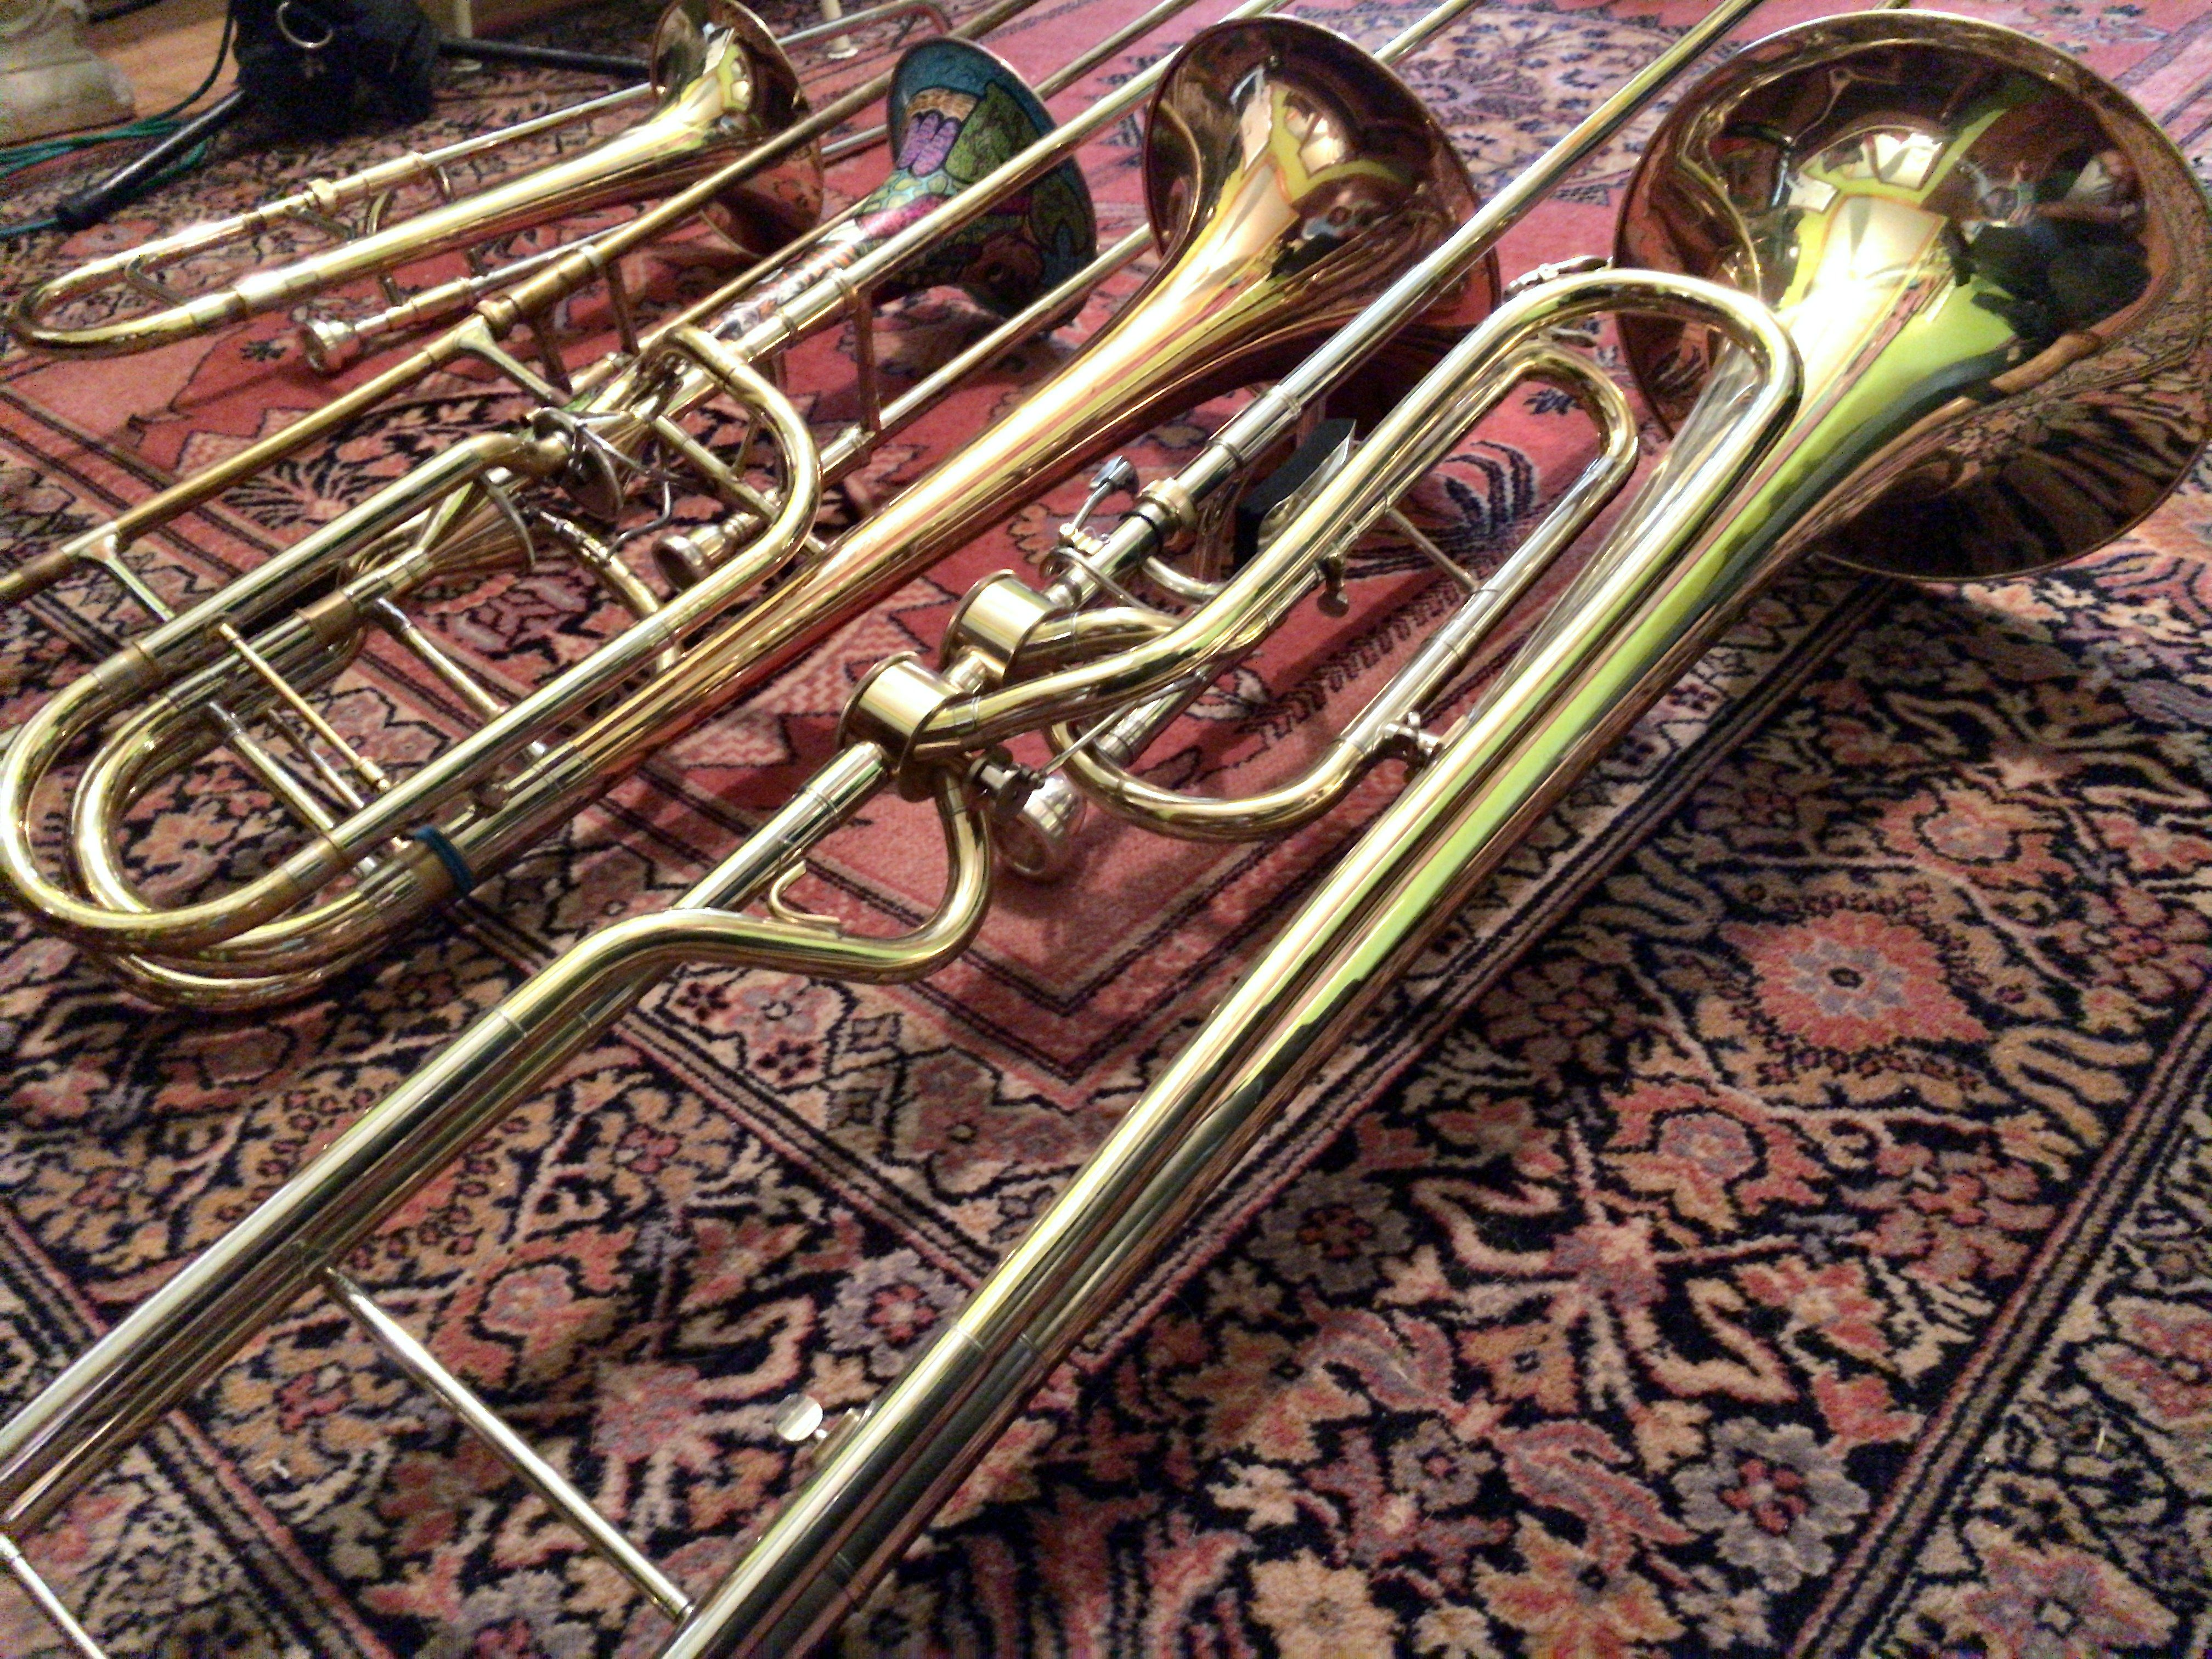 67b75a89eb Yes we play them all and work them into as many projects as possible. Our  composer Donny Walker is currently finishing his masters degree in brass ...